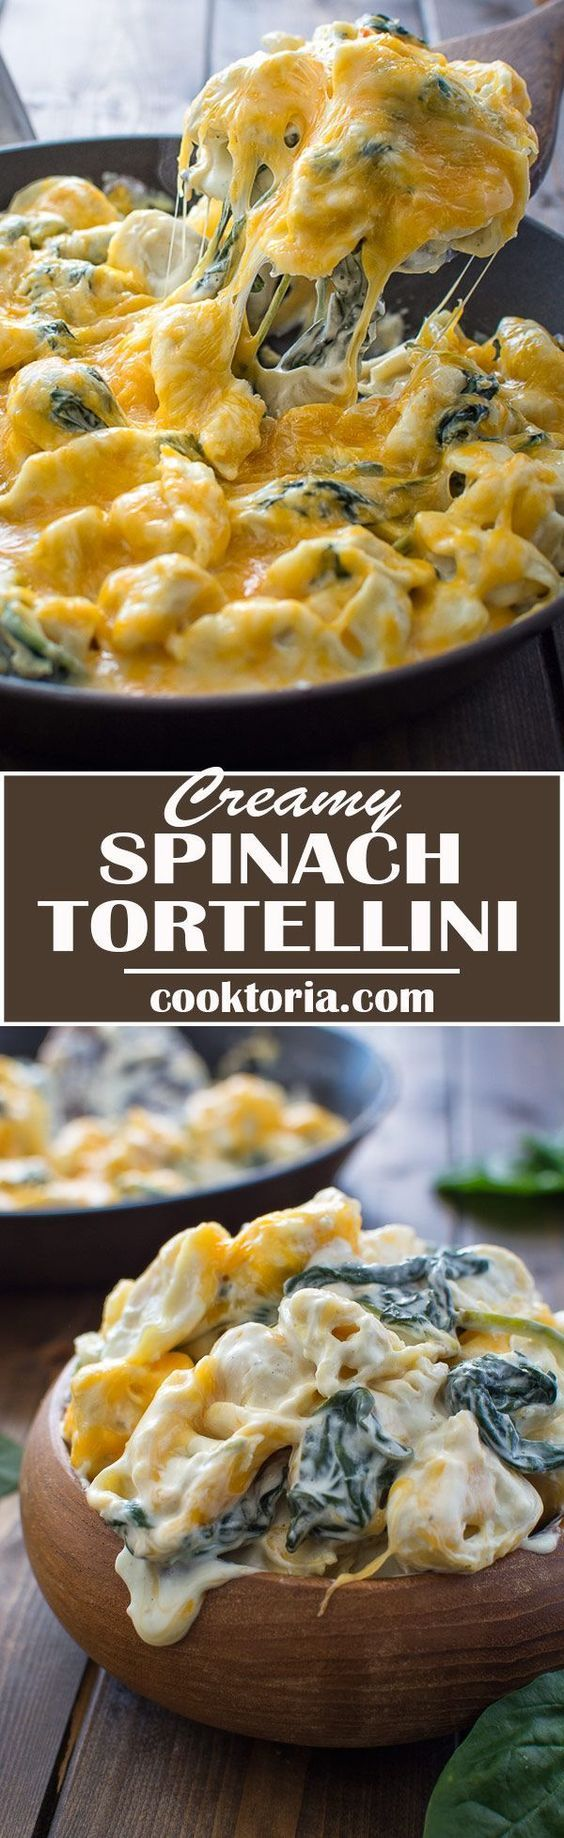 This 5-ingredient Creamy Spinach Tortellini makes a quick and tasty dinner that all the family will love! ❤ http://COOKTORIA.COM